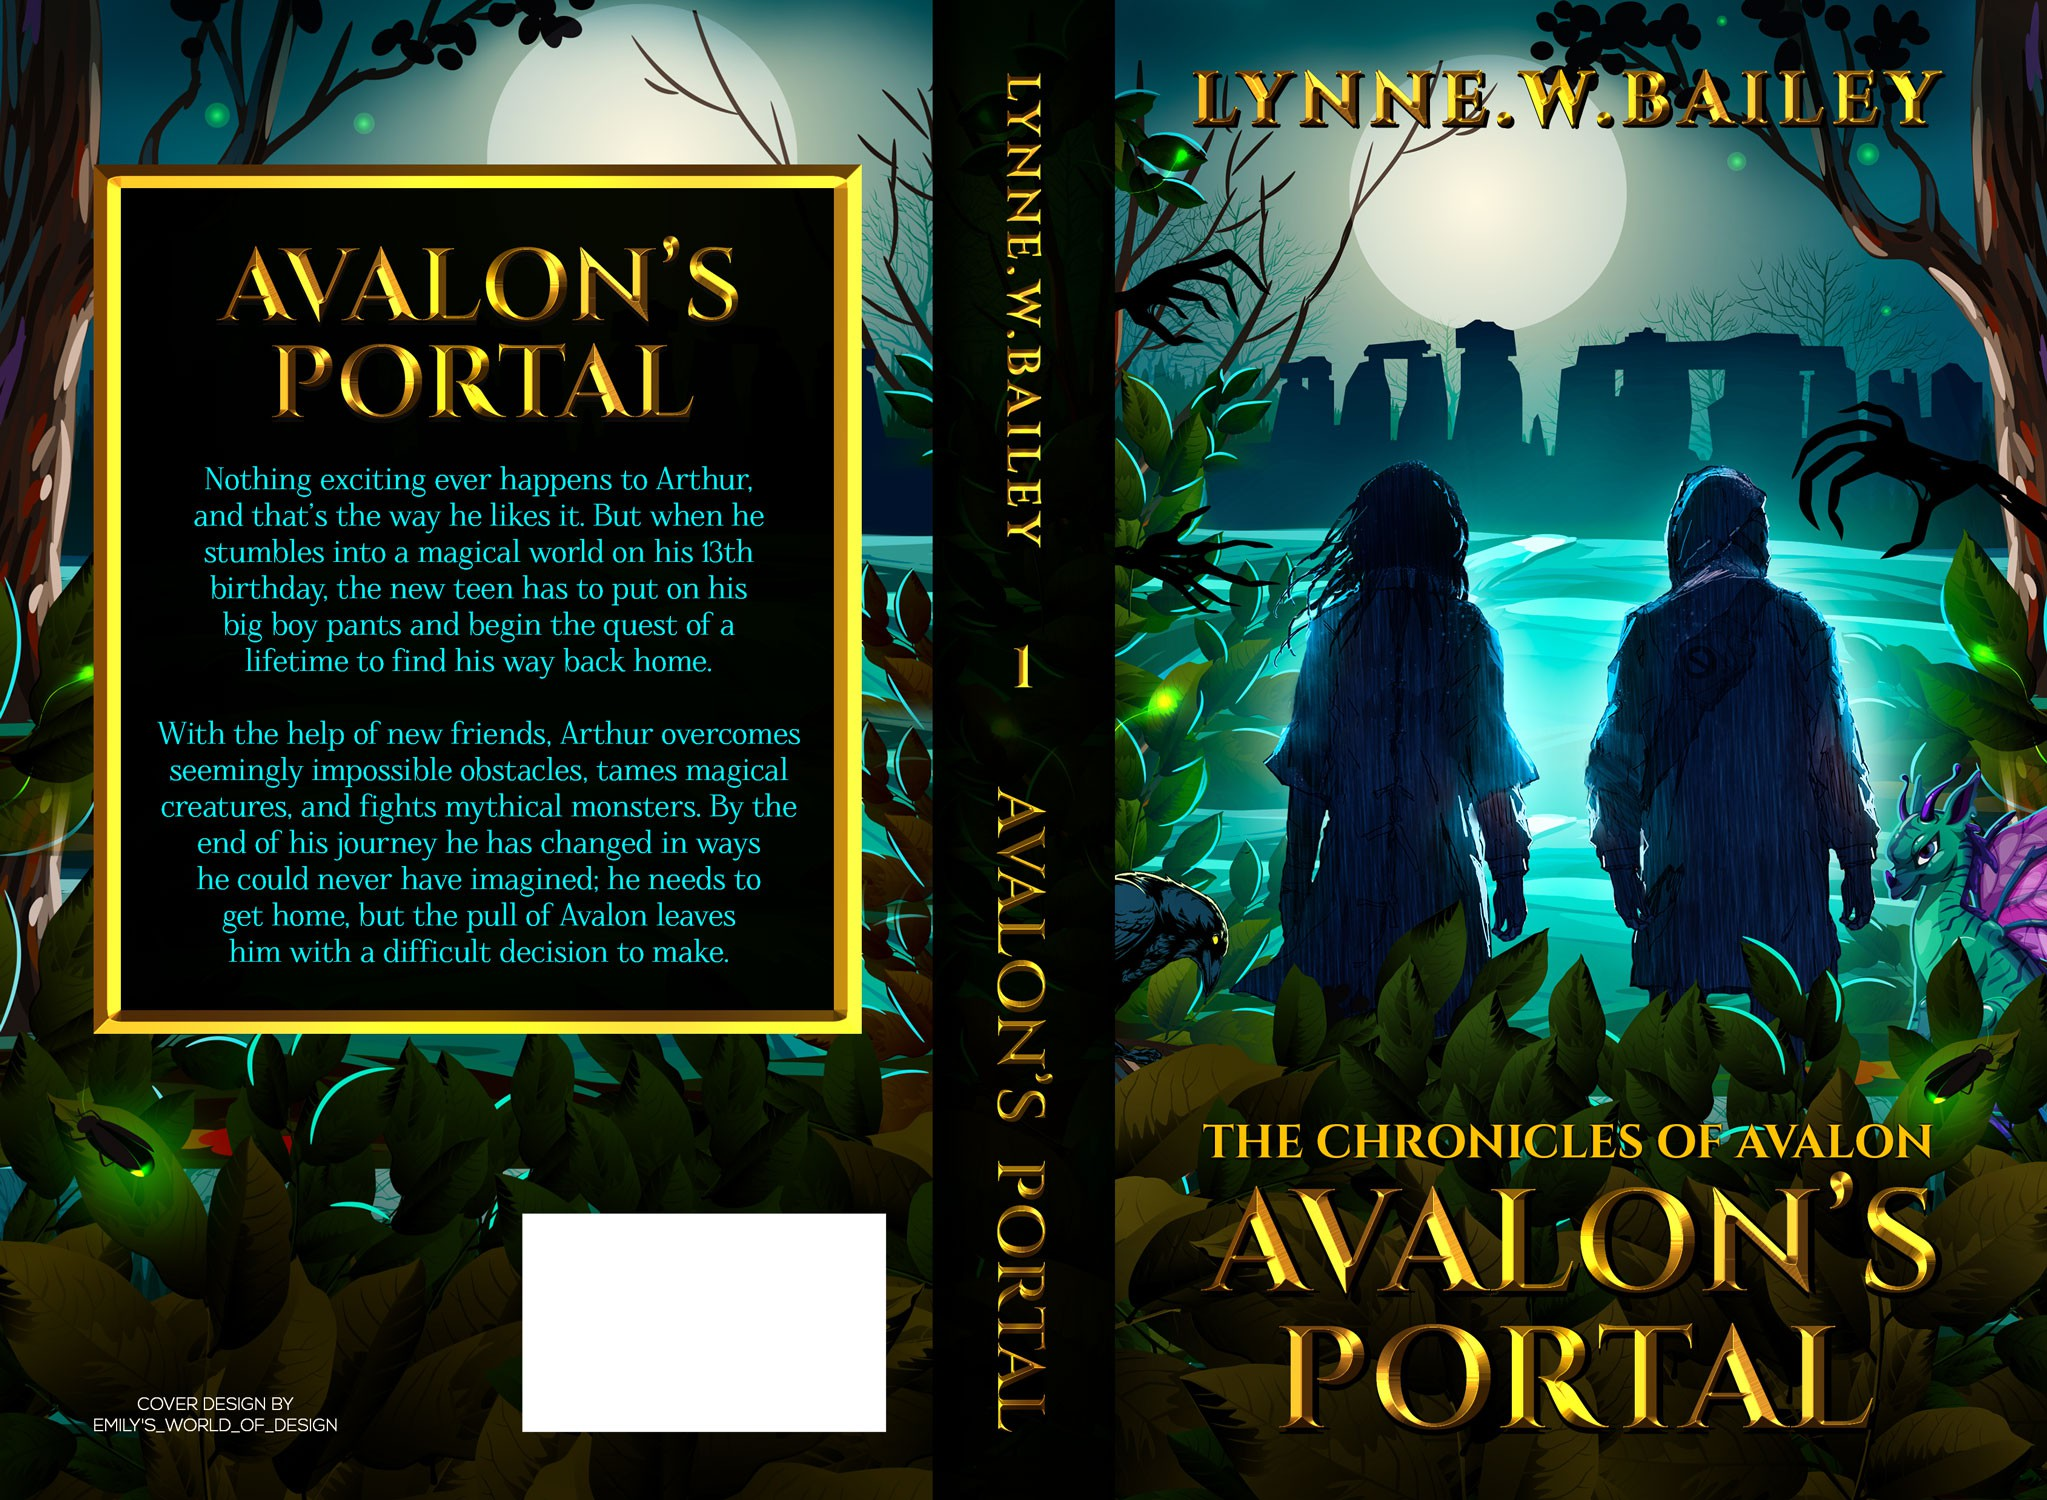 Book cover for Avalon's Portal